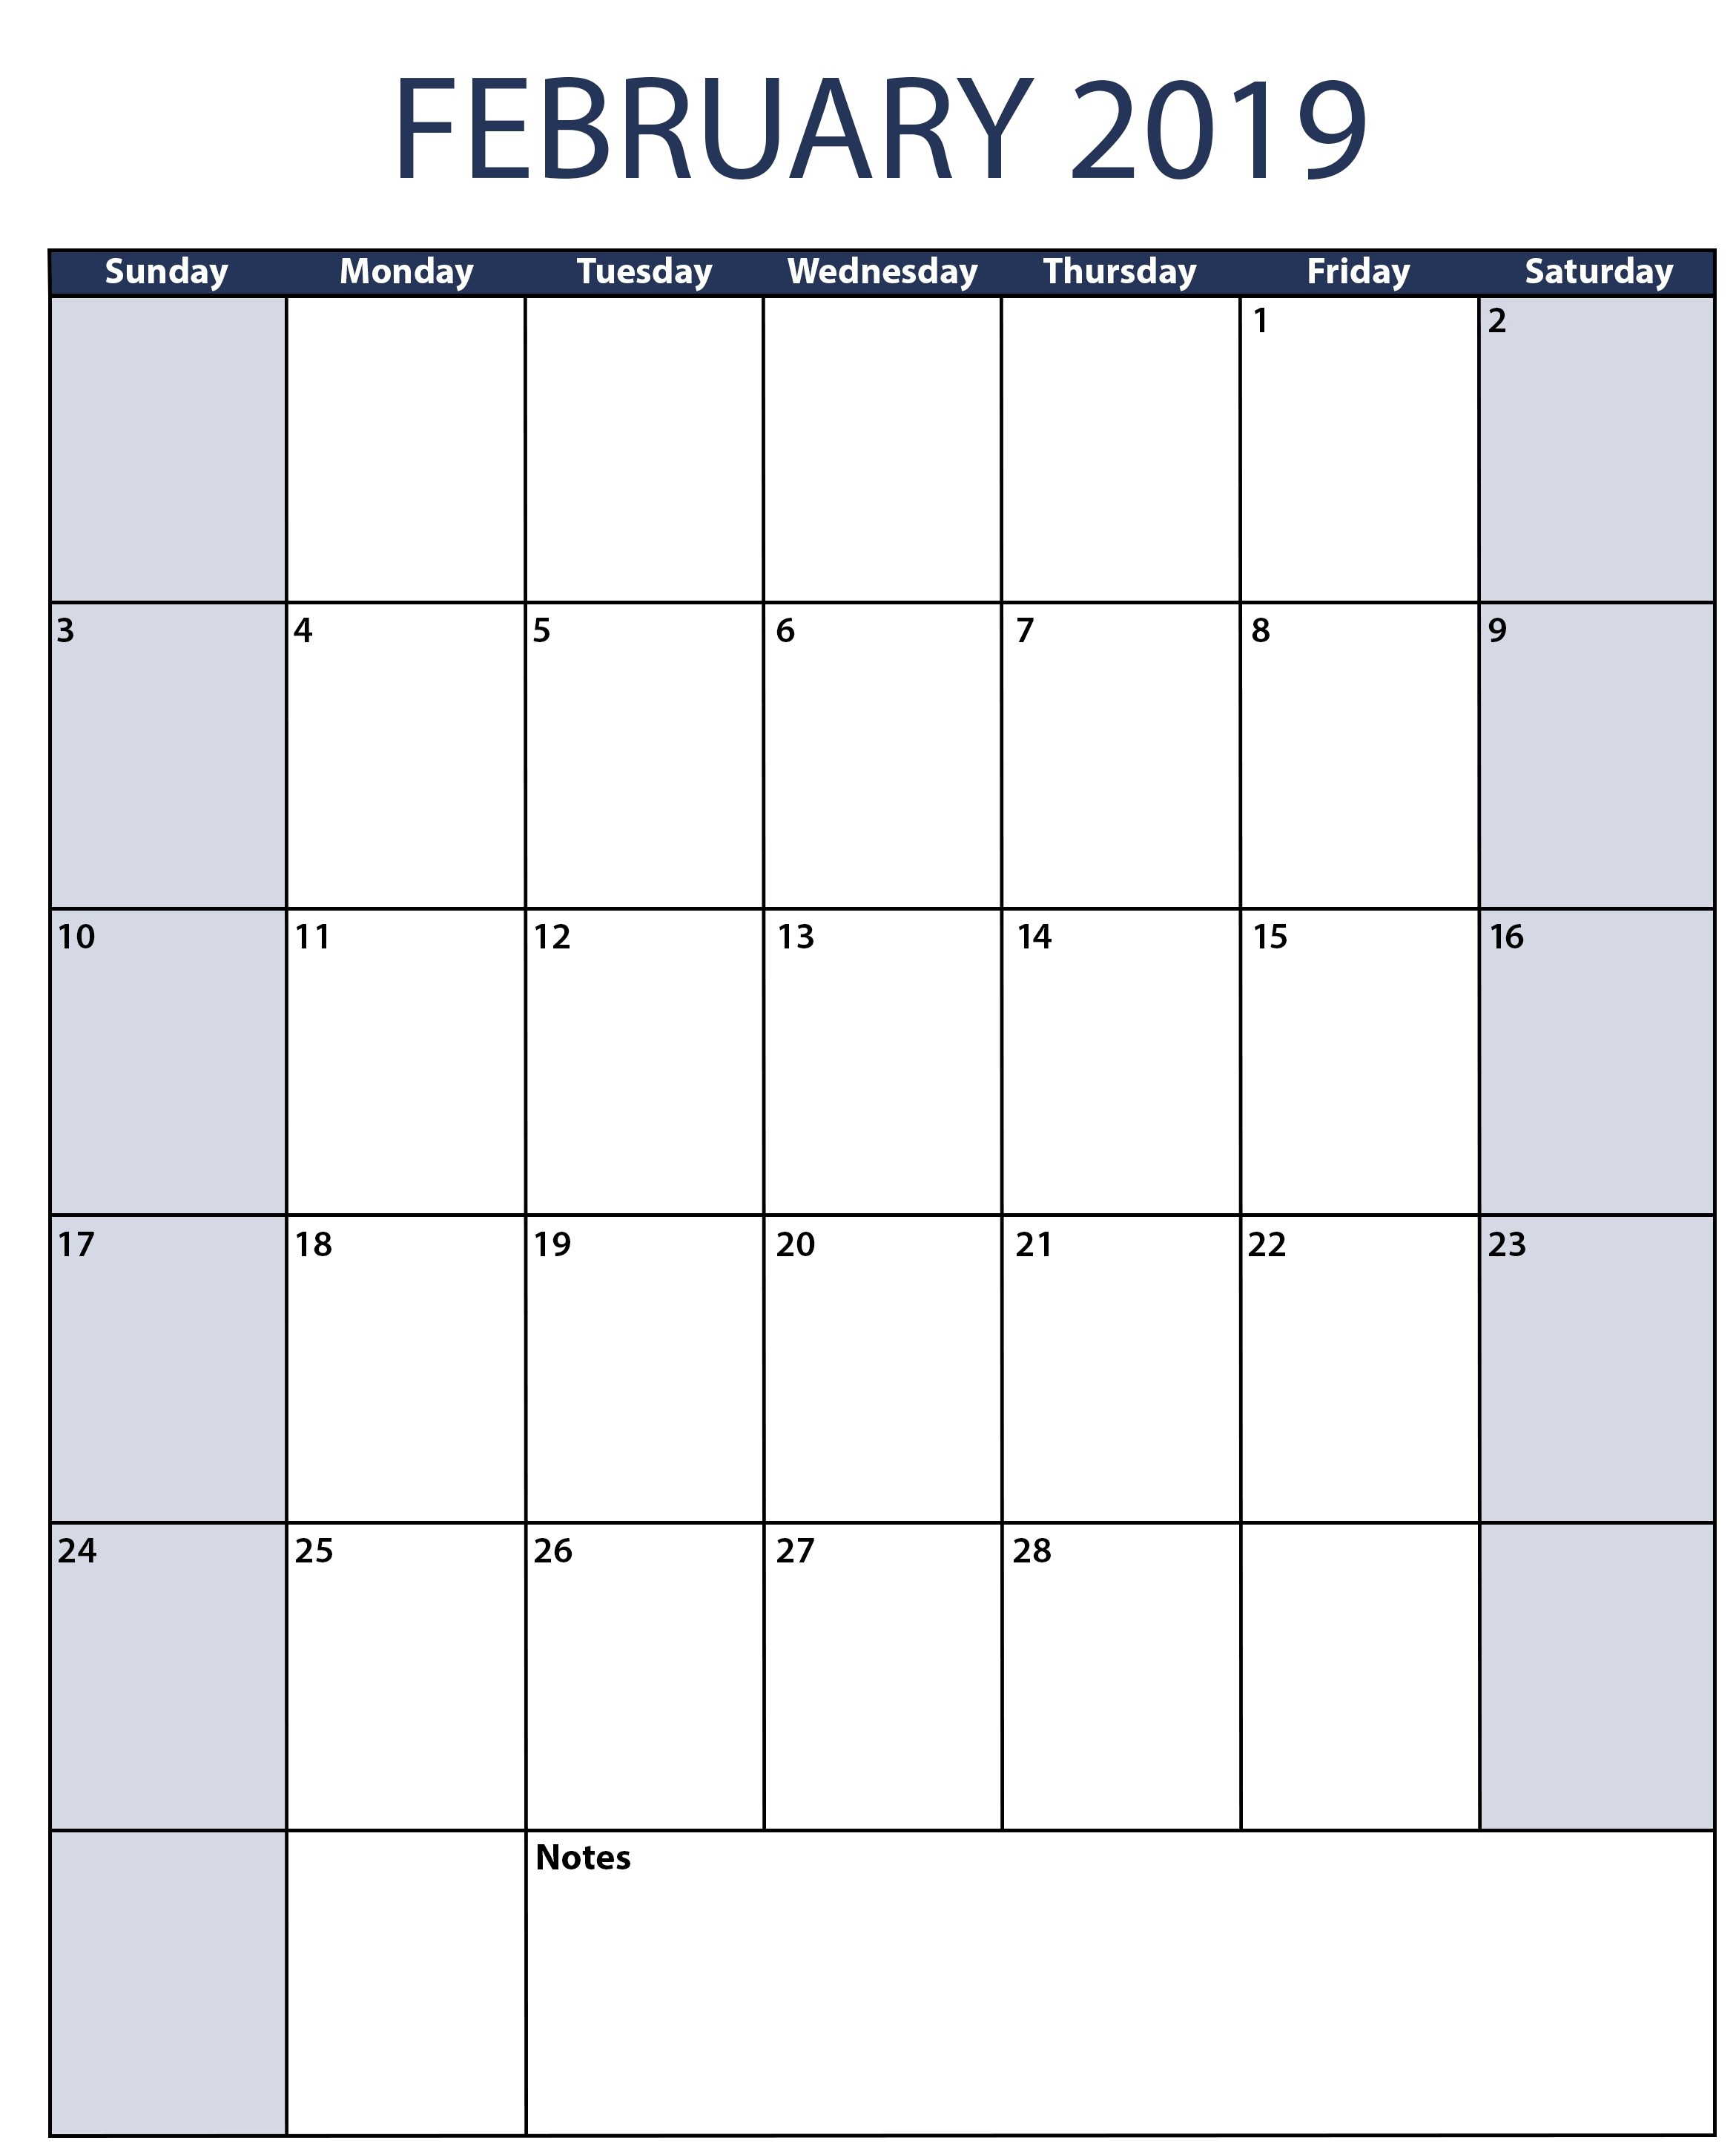 March 2018 Calendar Kalnirnay Más Actual Editable Calendar February 2019 Lara Expolicenciaslatam Of March 2018 Calendar Kalnirnay Más Recientes Kalender Vorlage Powerpoint 2017 Great Keynote Calendar Template